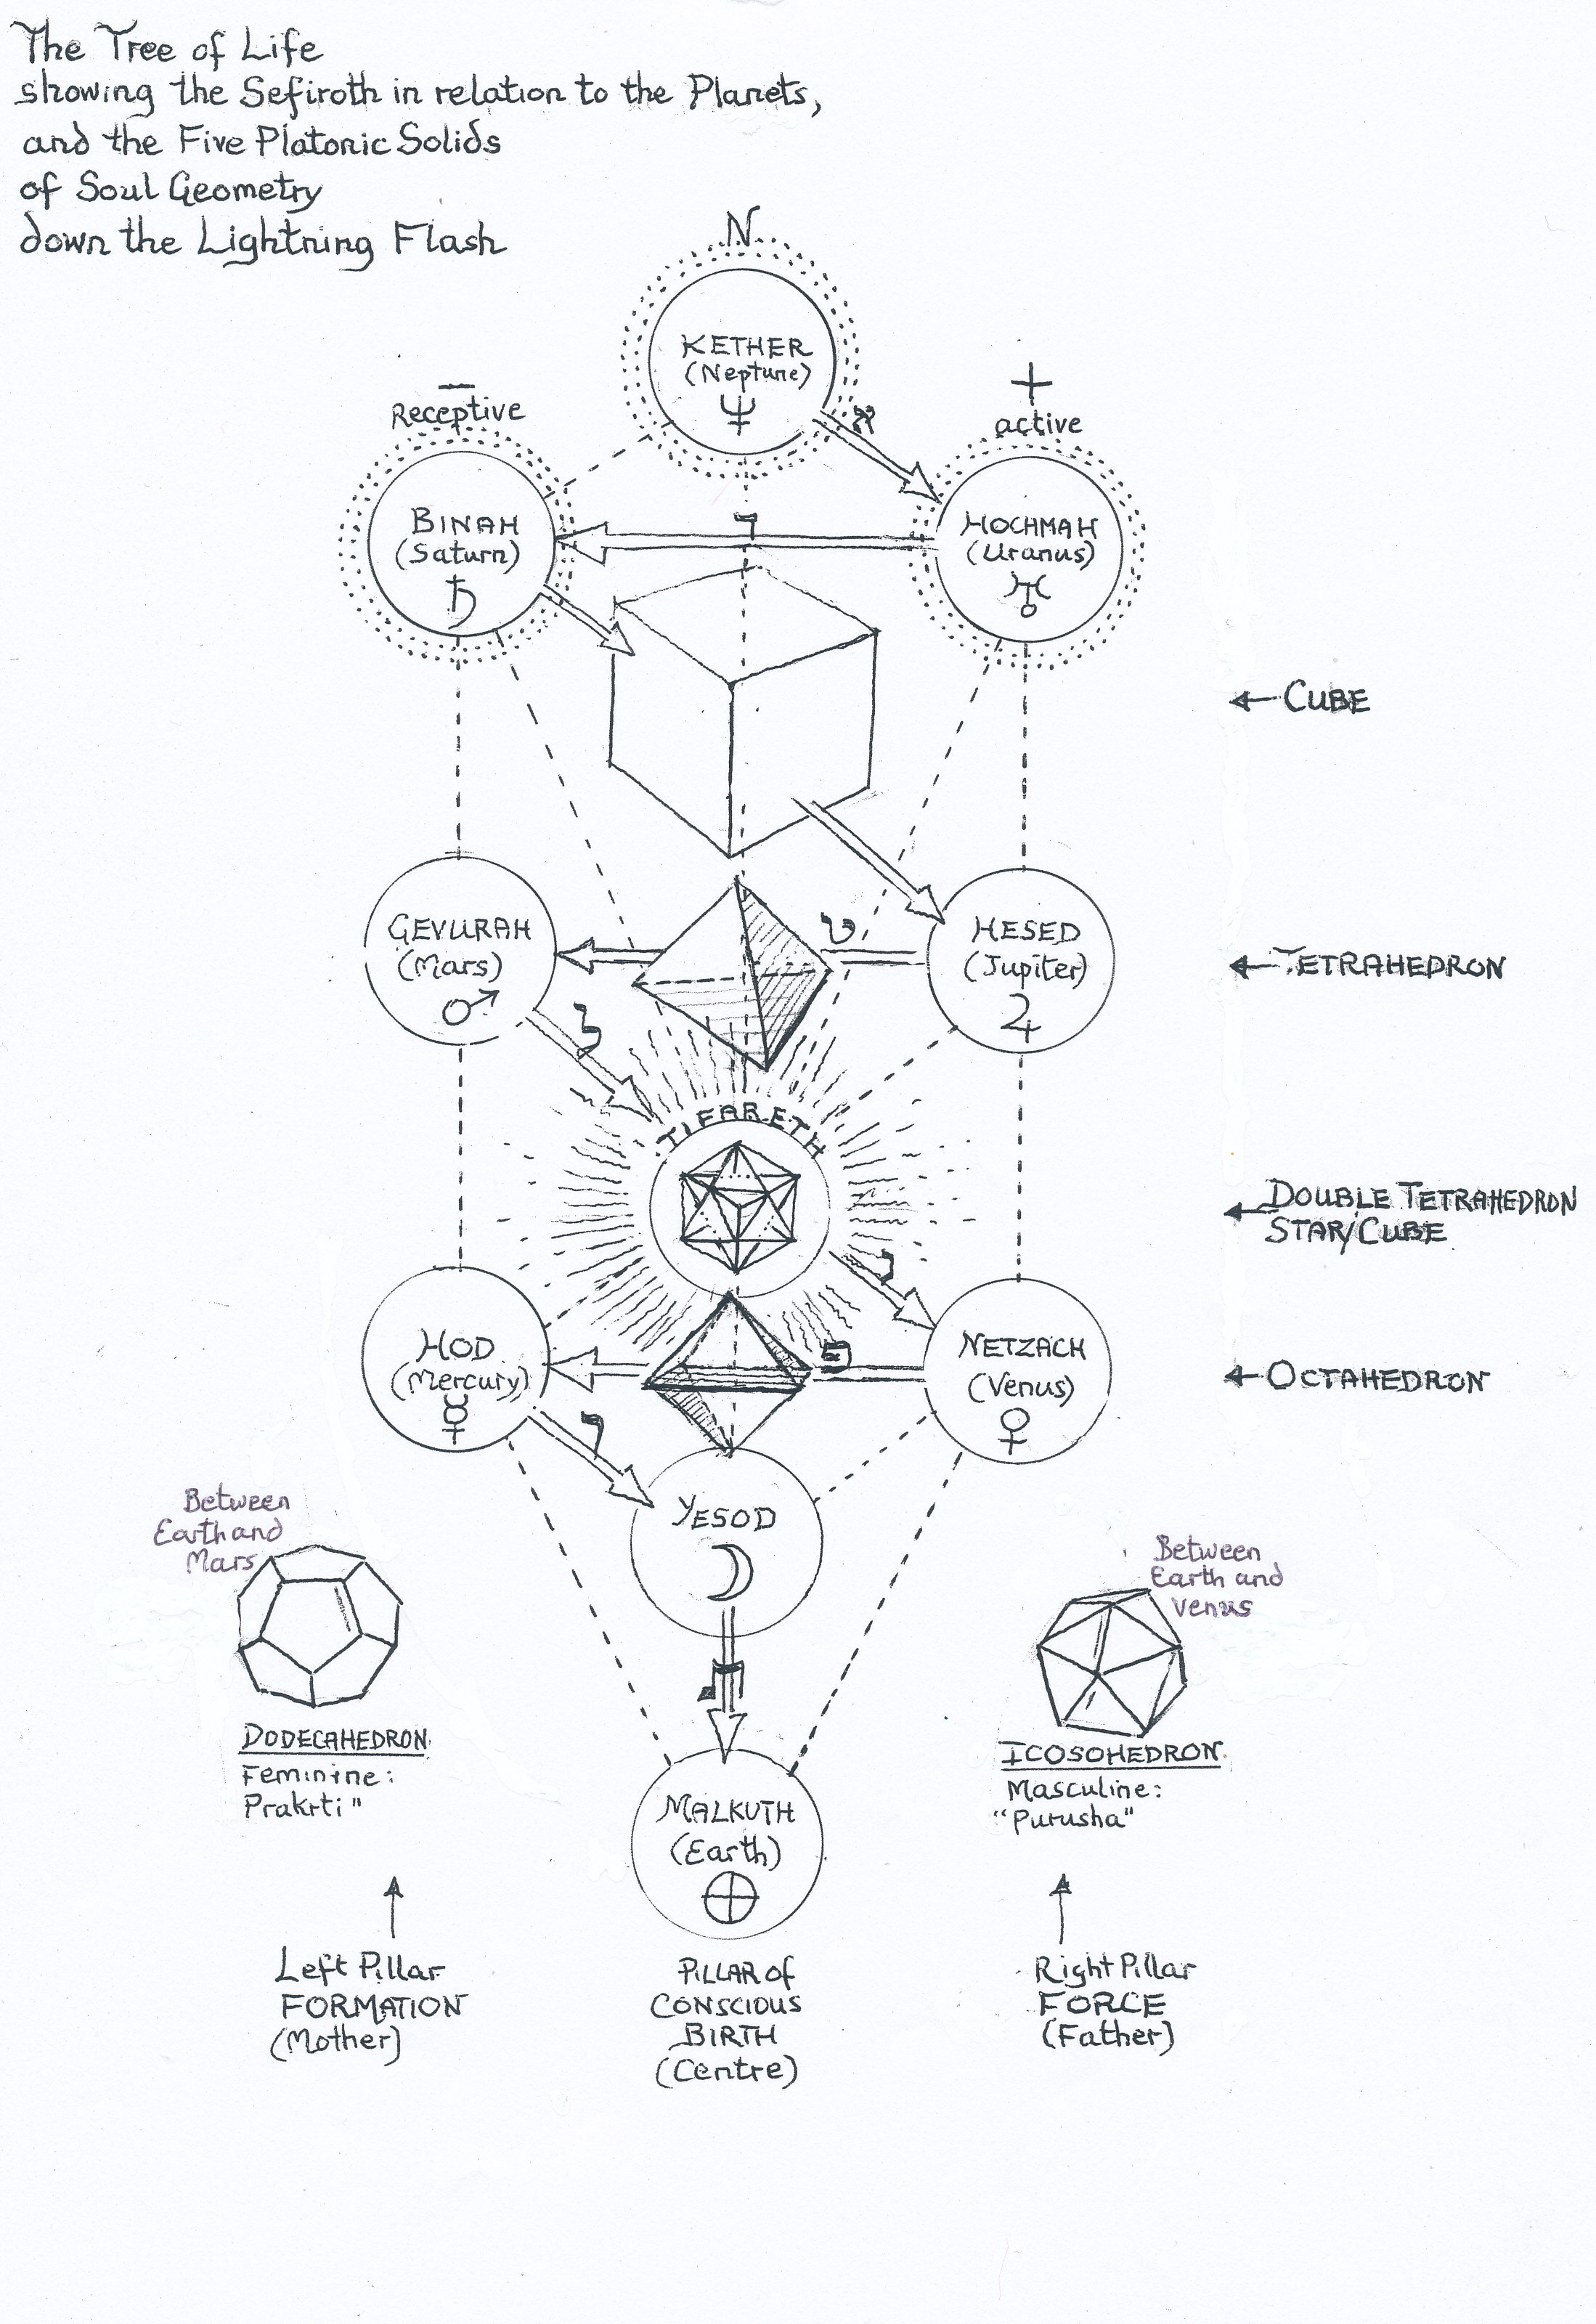 Platonic Solids On The Tree Of Life